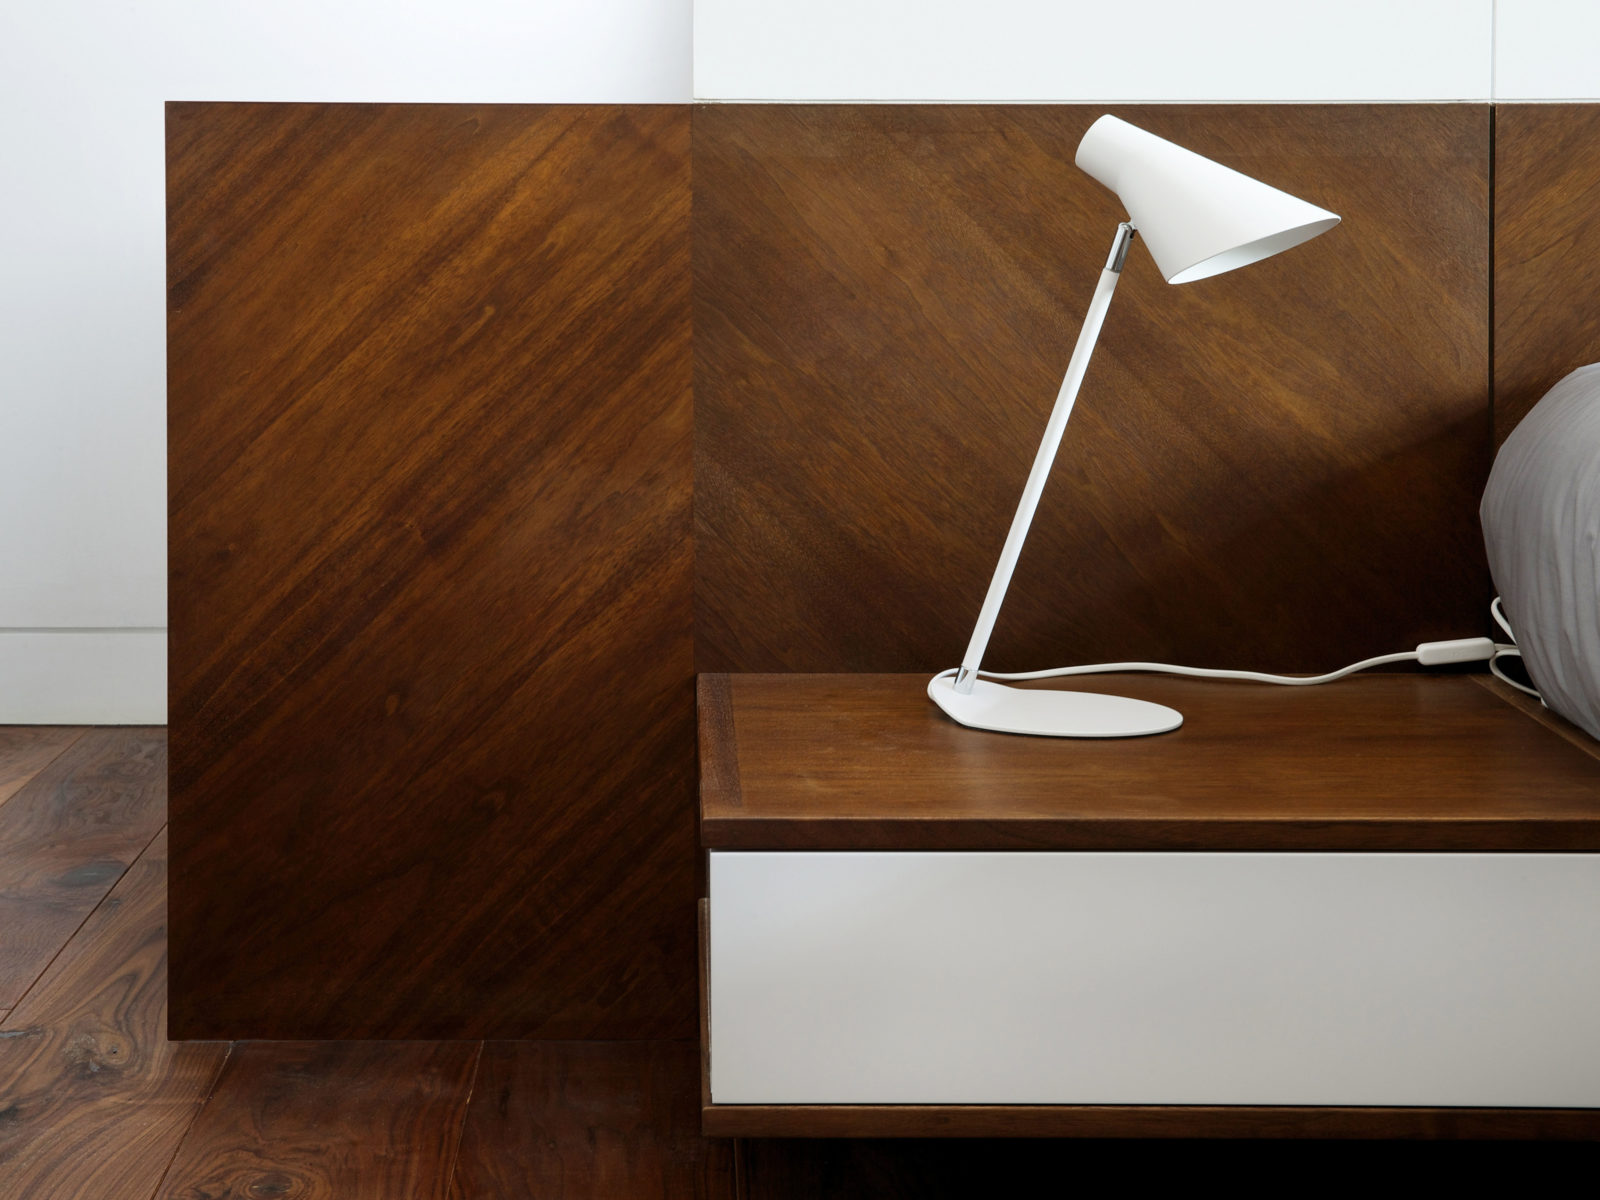 walnut veneer bedside table with touch to open lacquered drawer